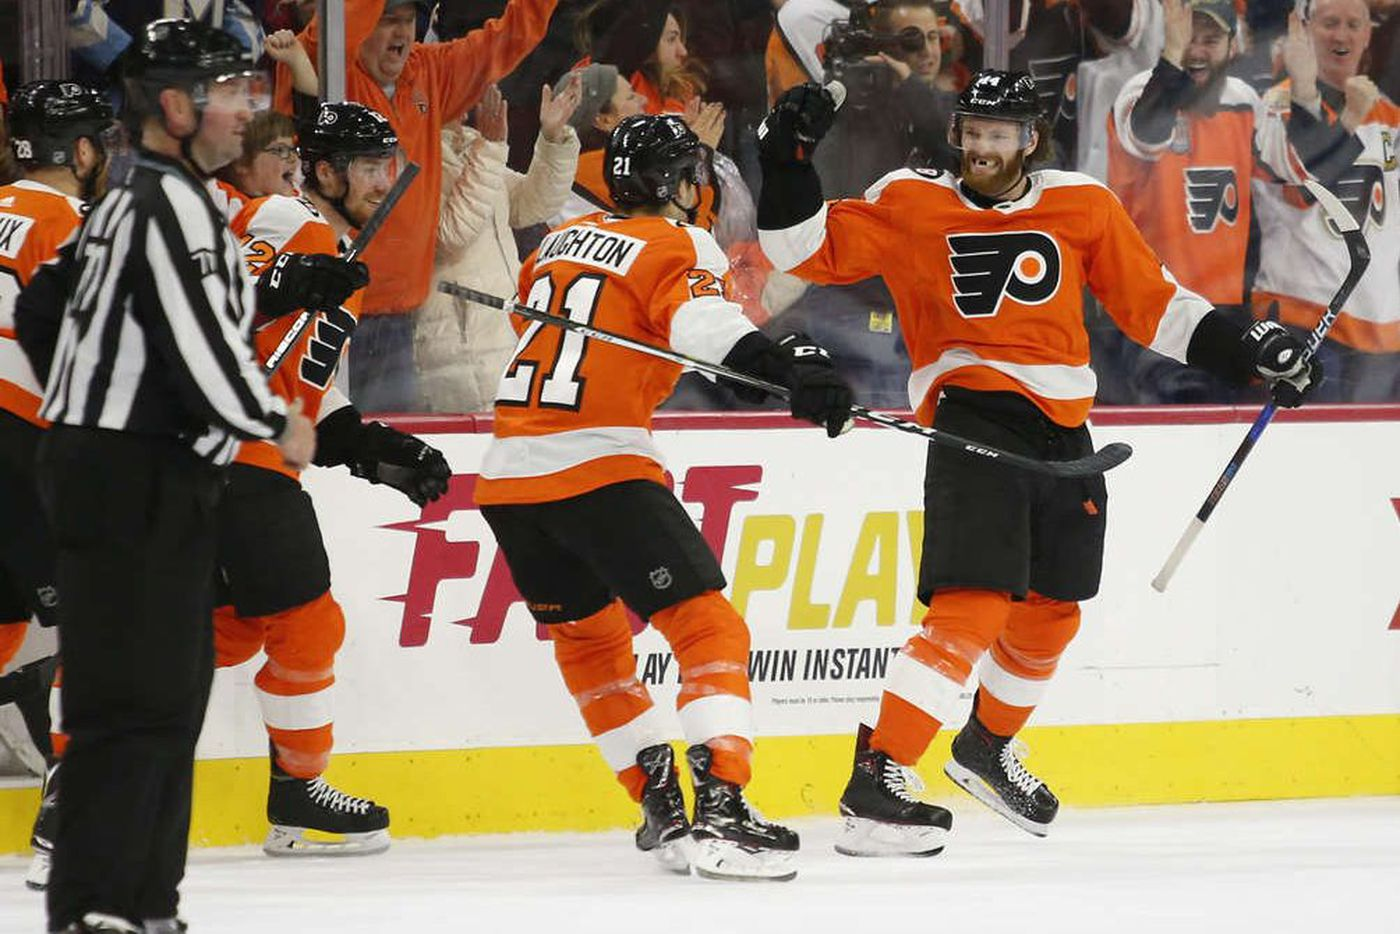 Flyers rally late, stun Maple Leafs, 3-2, in OT behind Sean Couturier's clutch goal